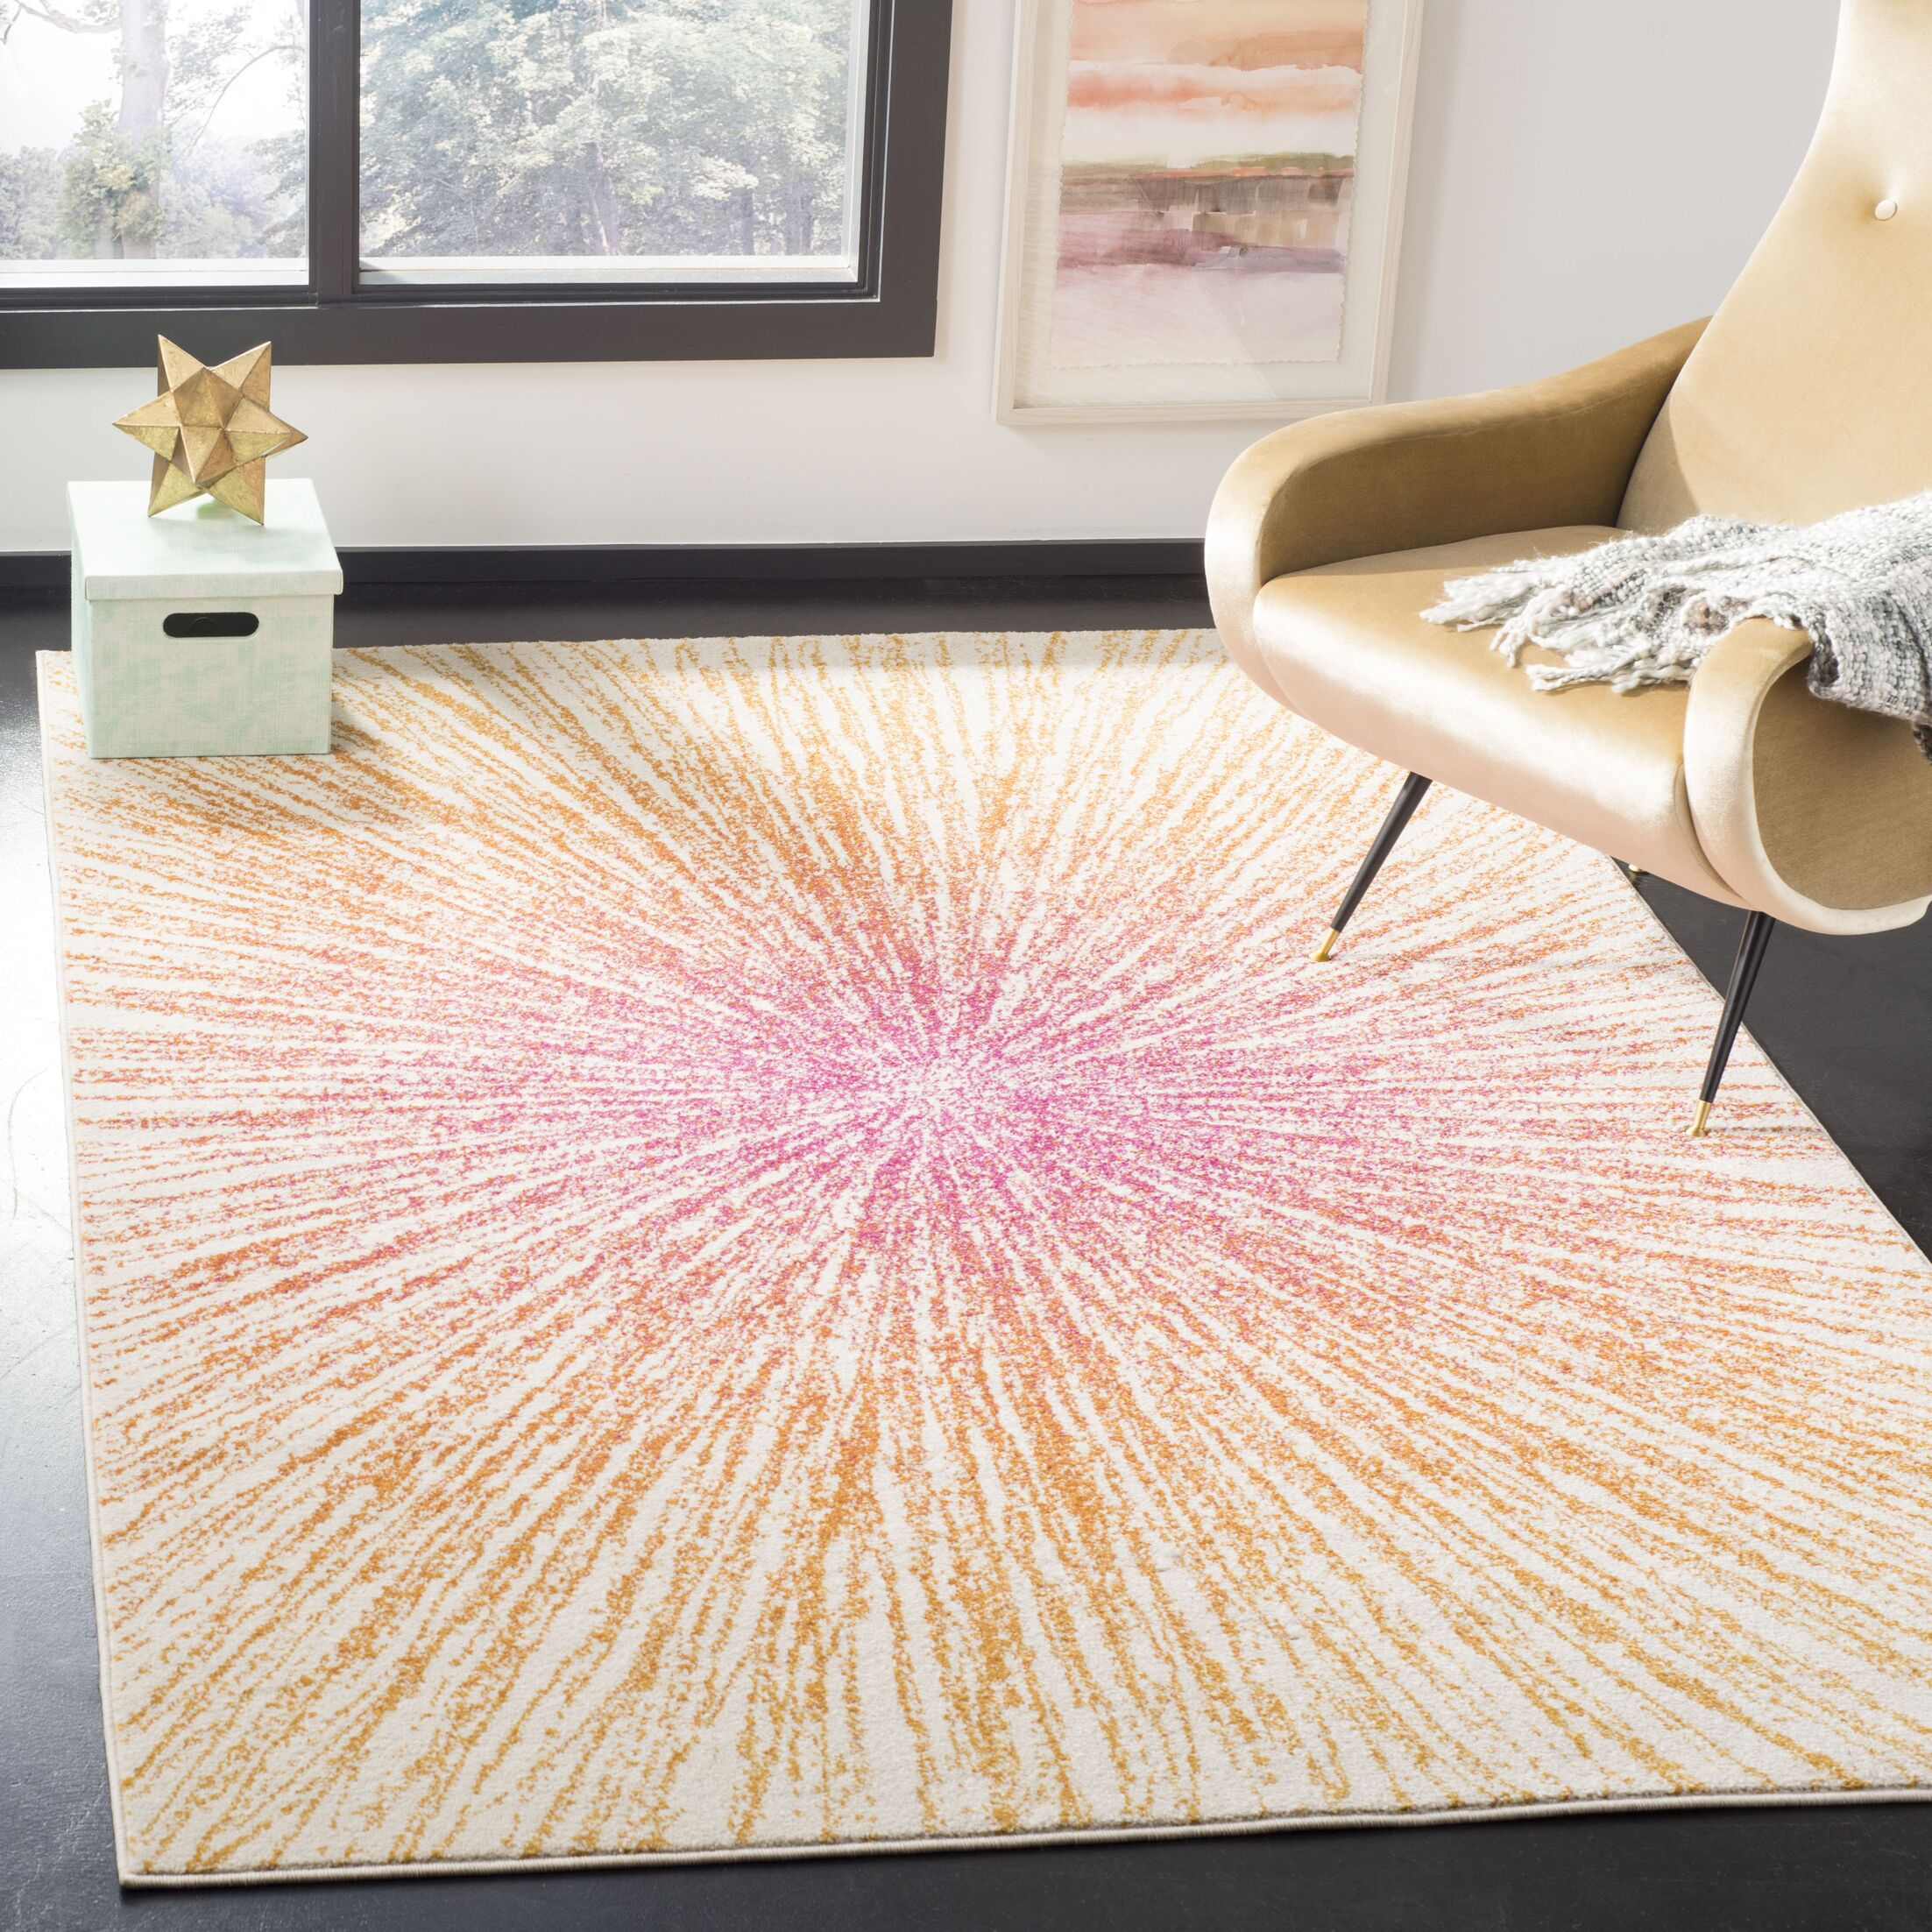 Hannan Fuchsia/Cream Area Rug Rug Size: Rectangle 6'7